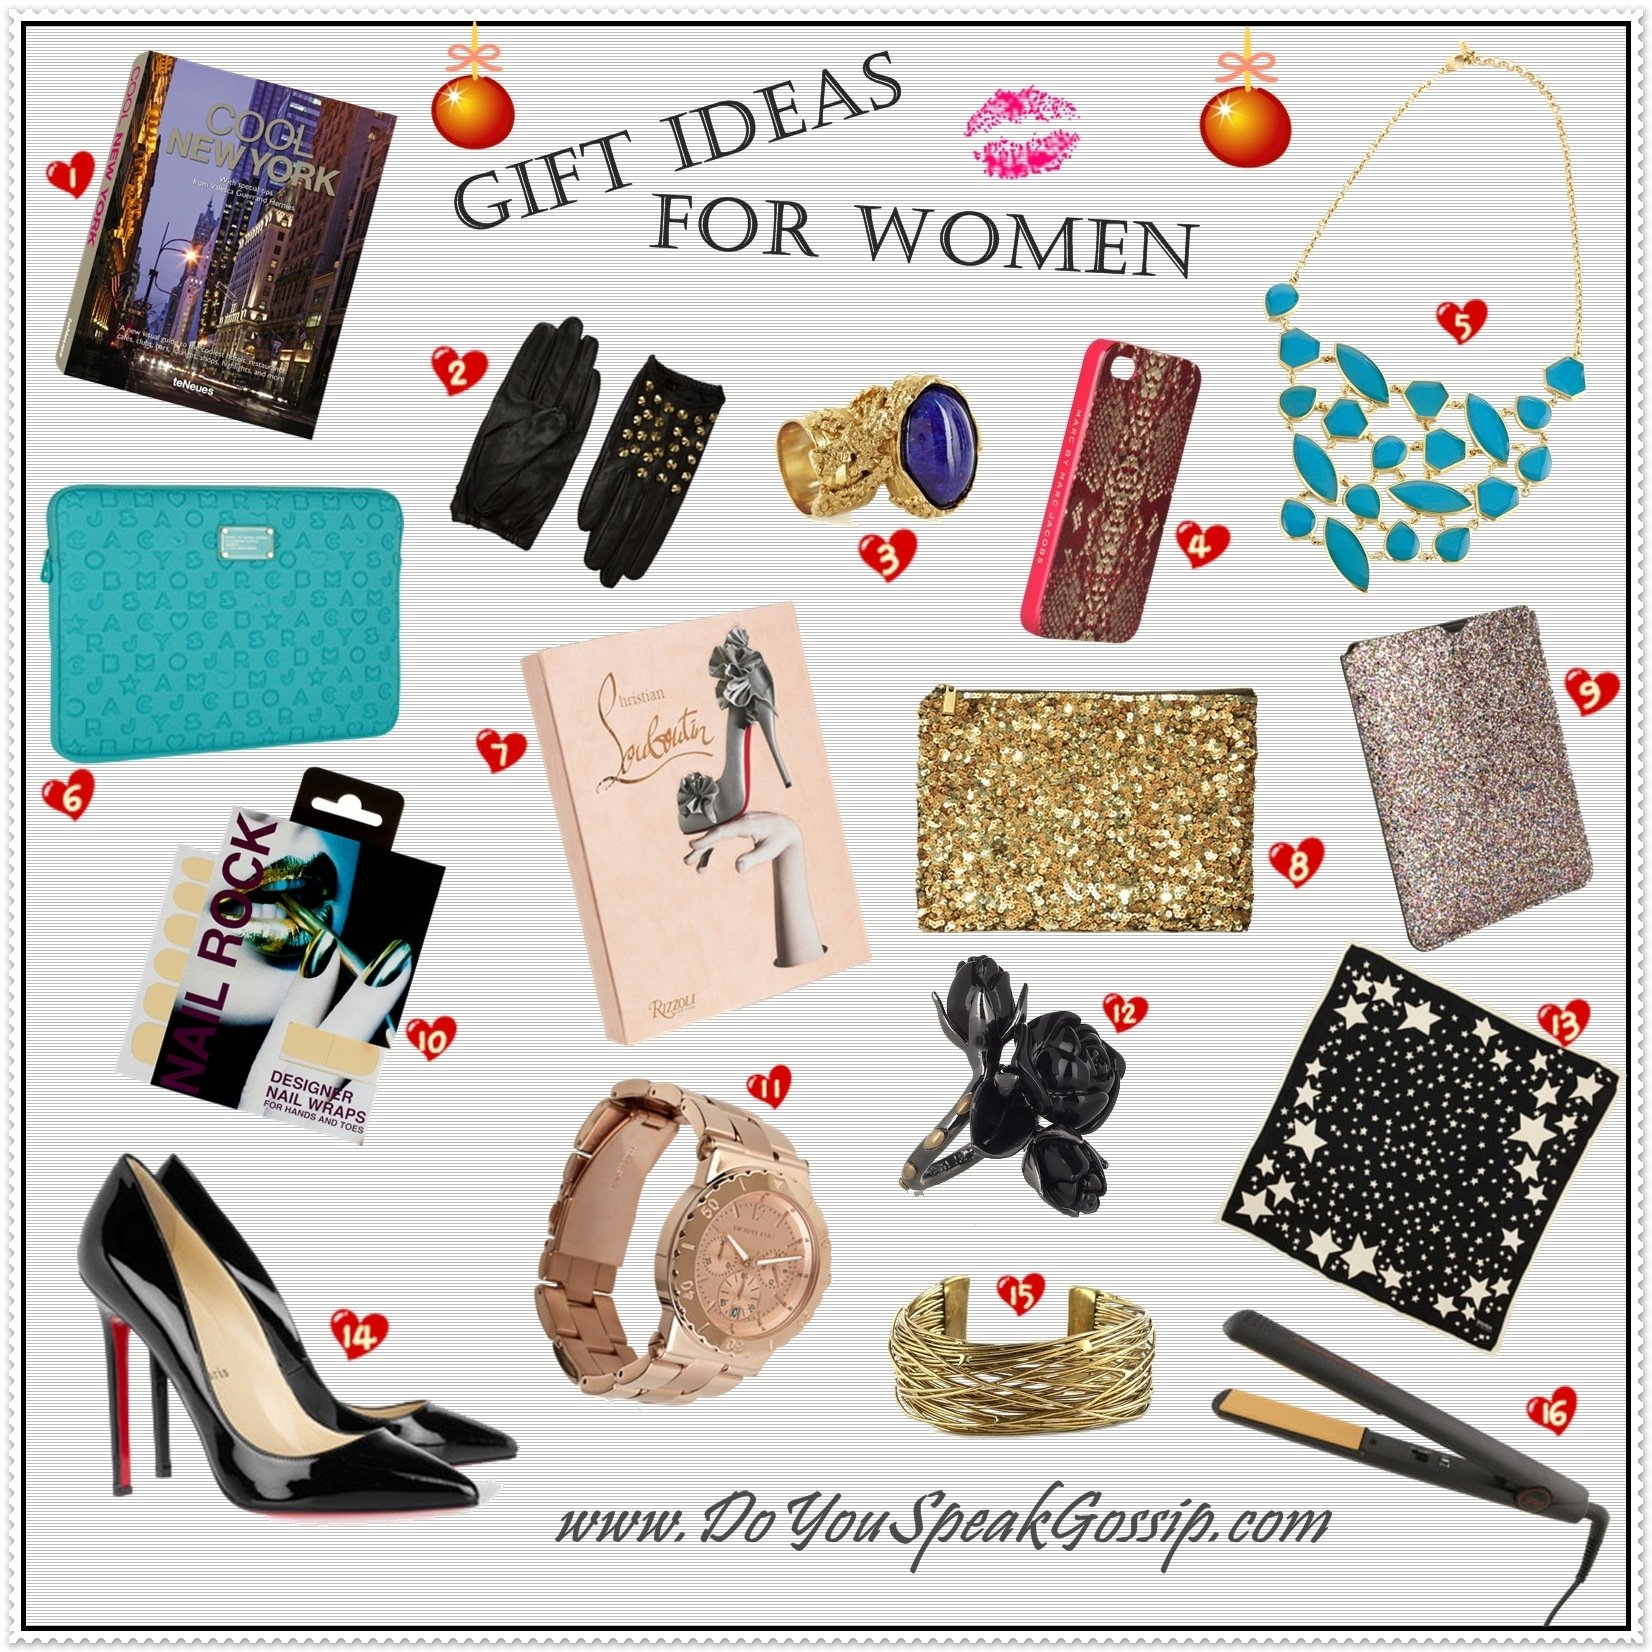 10 Beautiful Gift Ideas For A Woman gift ideas for women do you speak gossipdo you speak gossip 7 2021